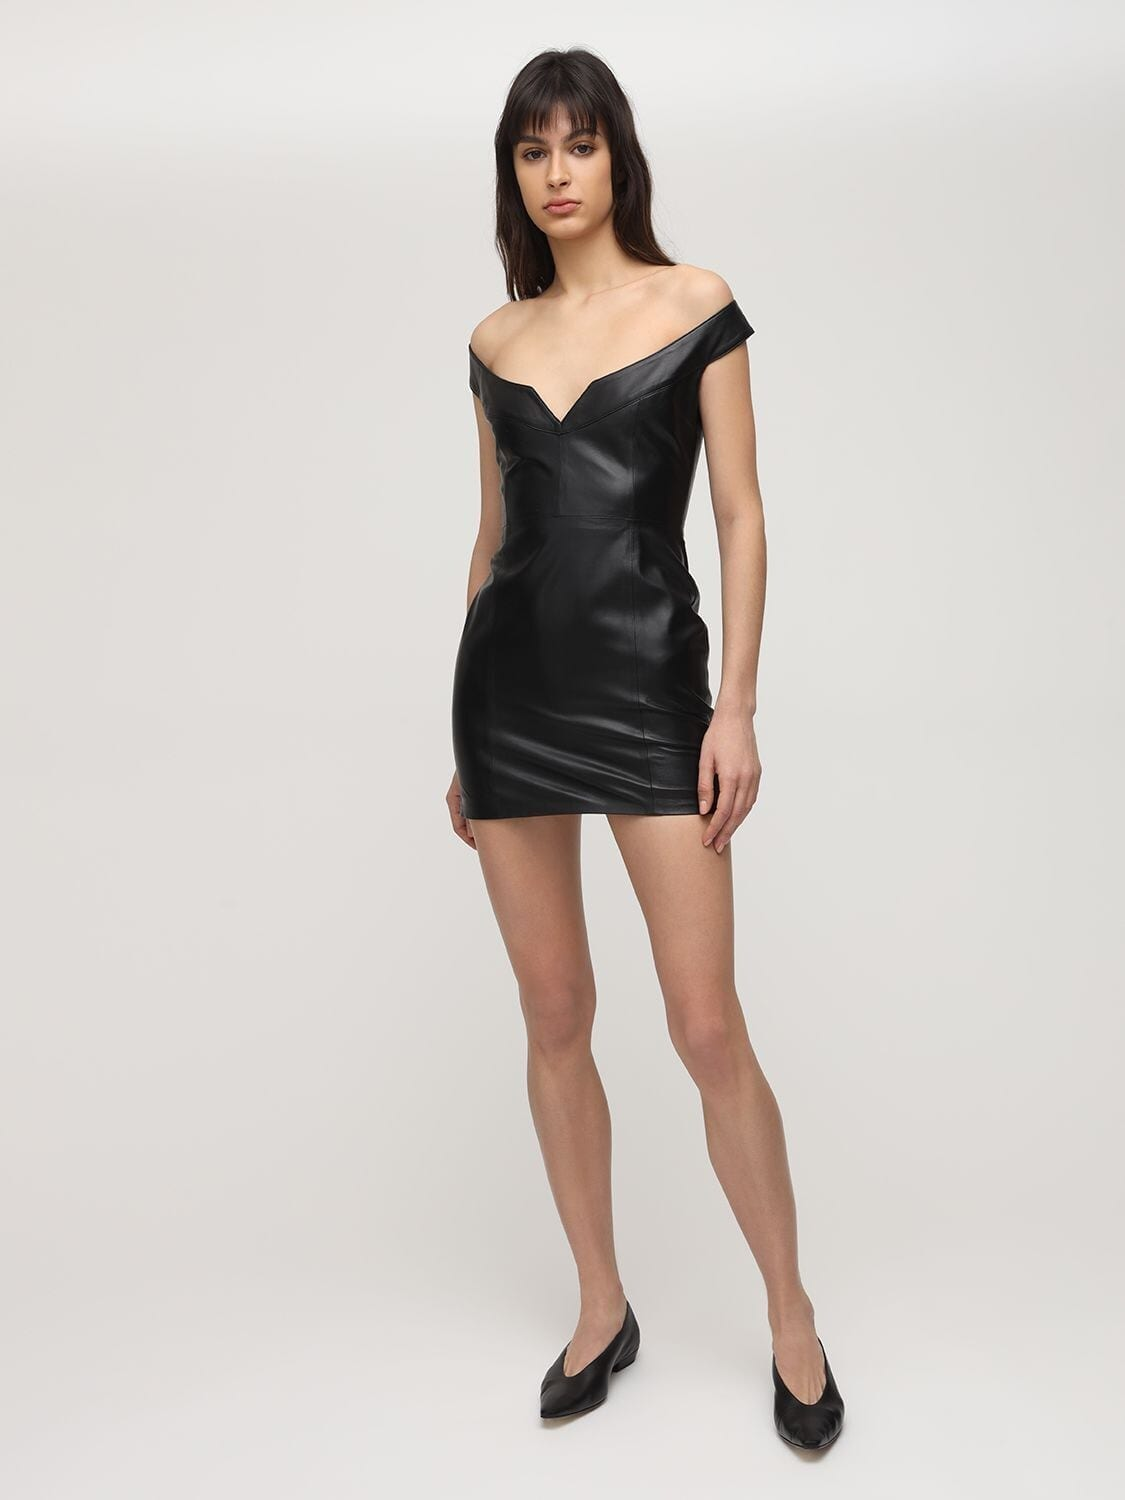 ZEYNEP ARCAY Princess Leather Mini Dress